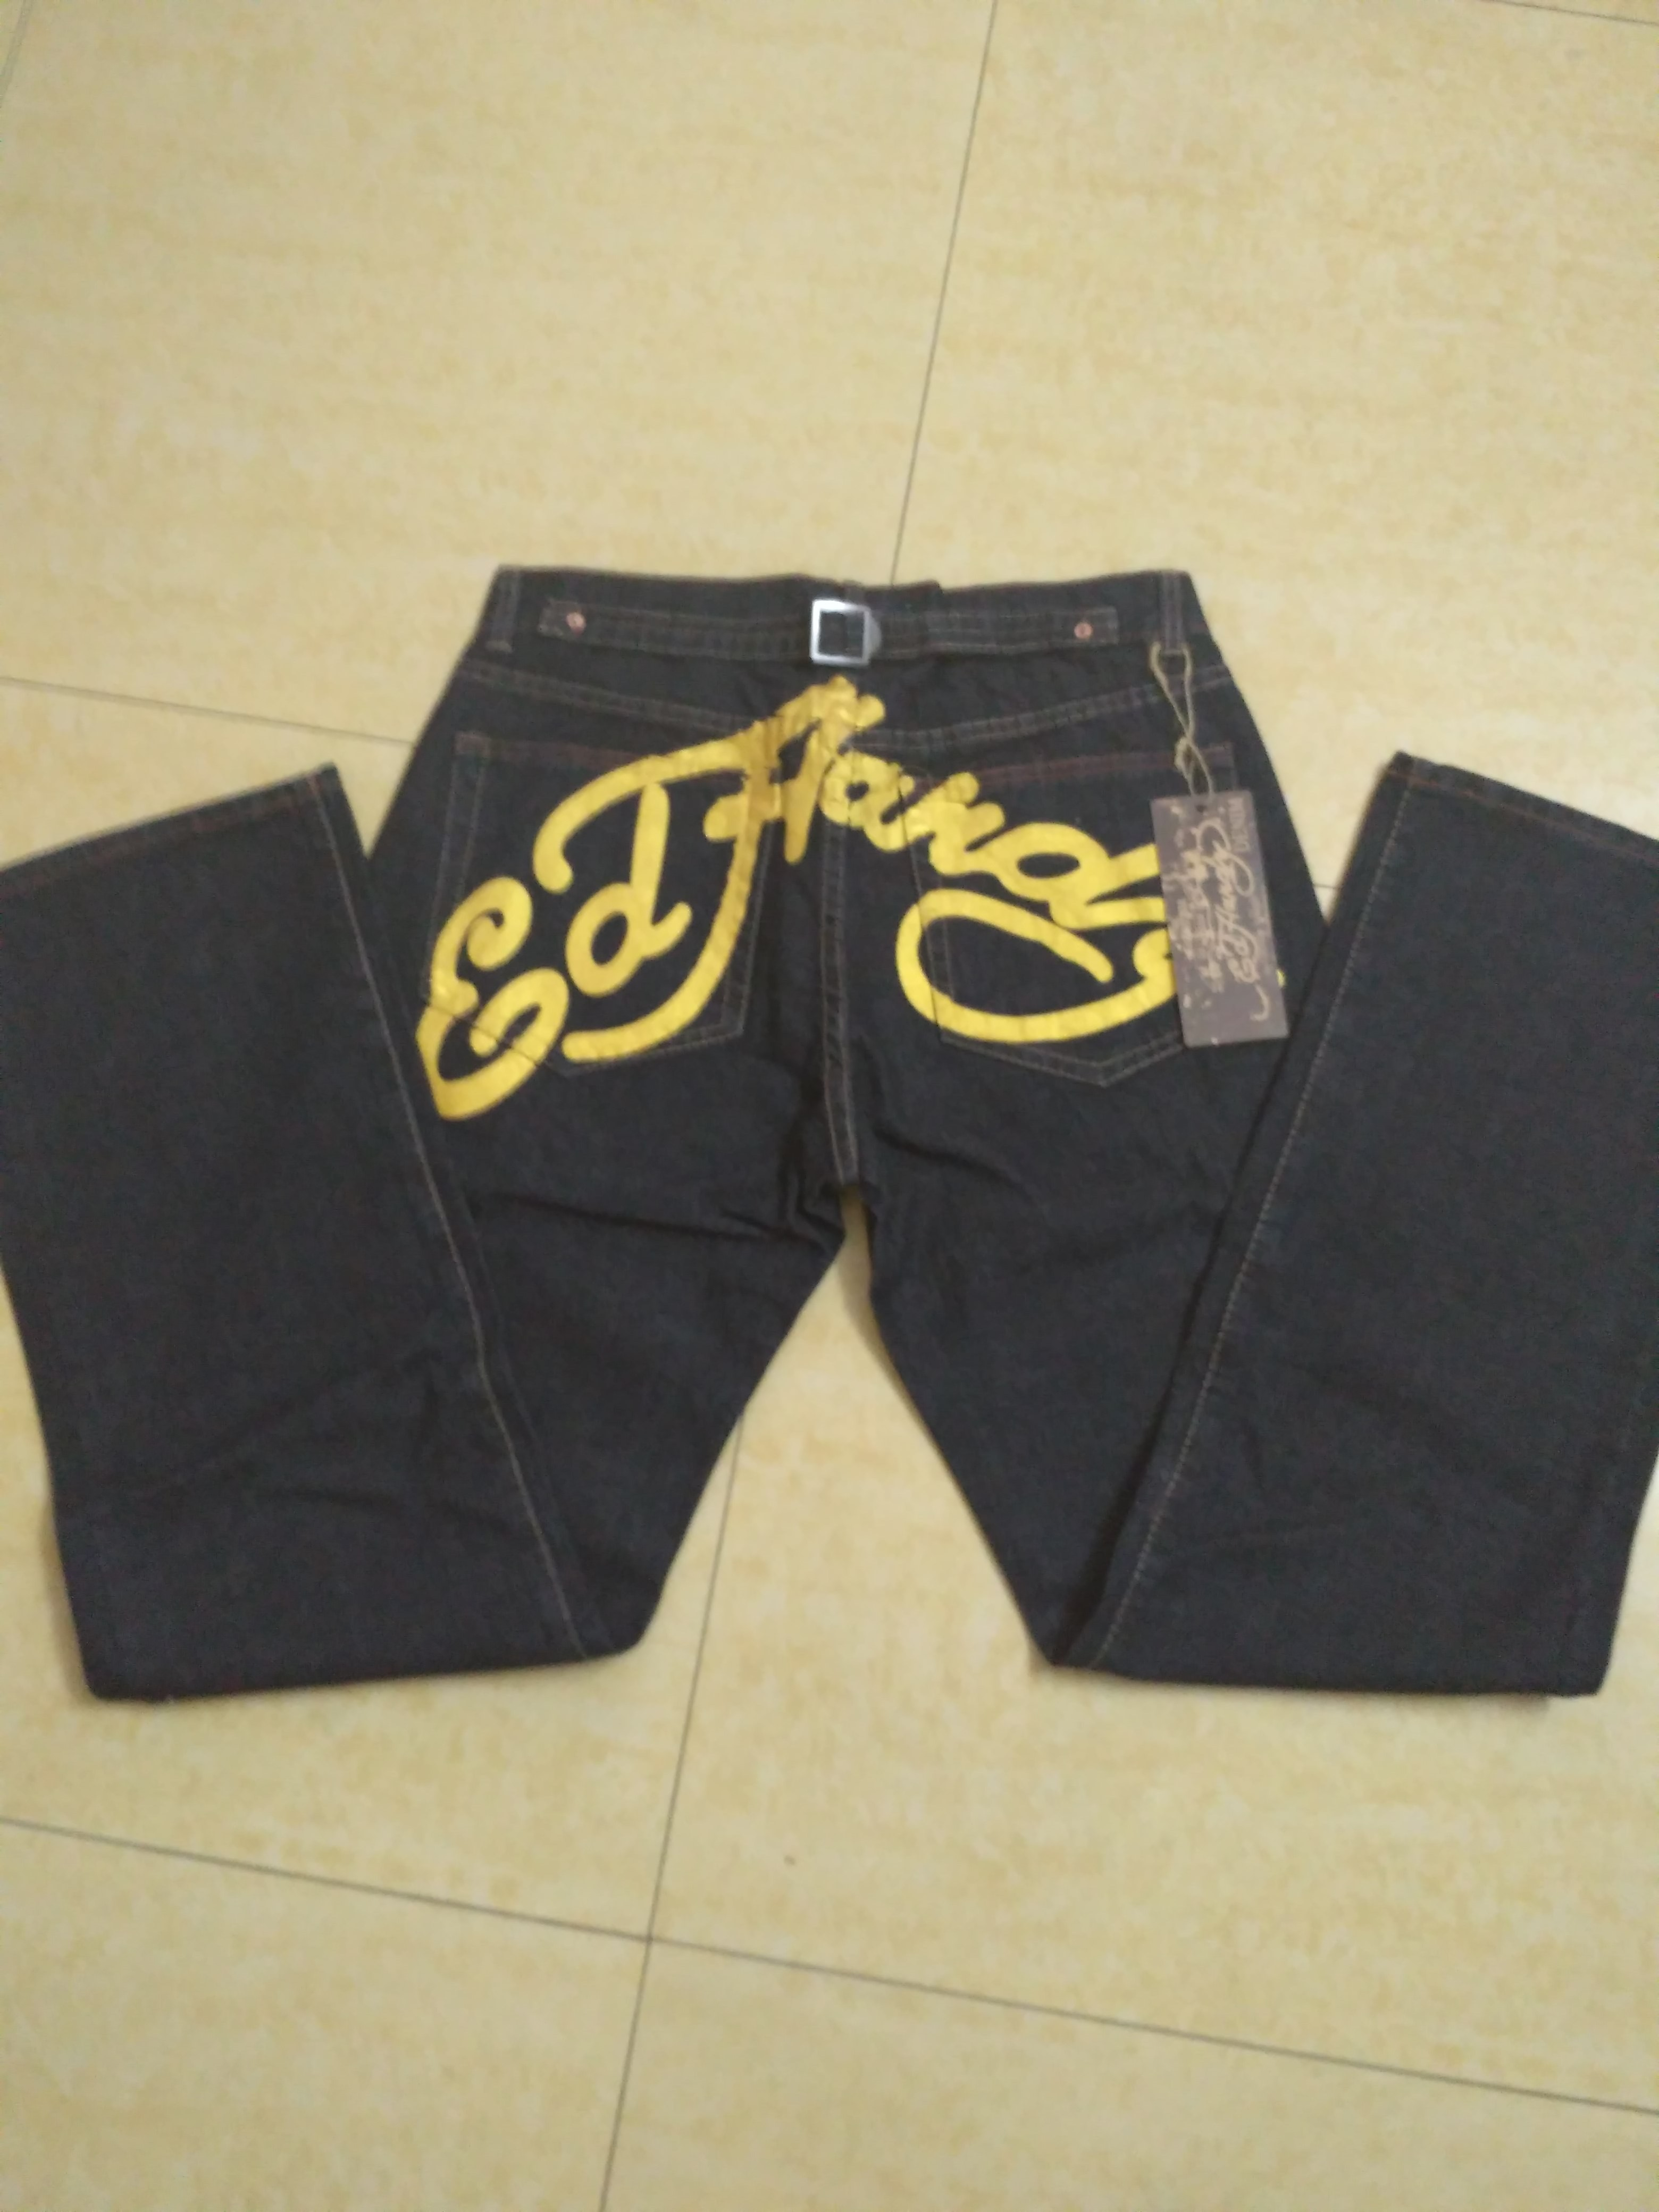 $22 cheap SPECIAL OFFER Christian Audigier Jeans for Men size 32 #243662 - [GT243662] free shipping | Replica SPECIAL OFFER